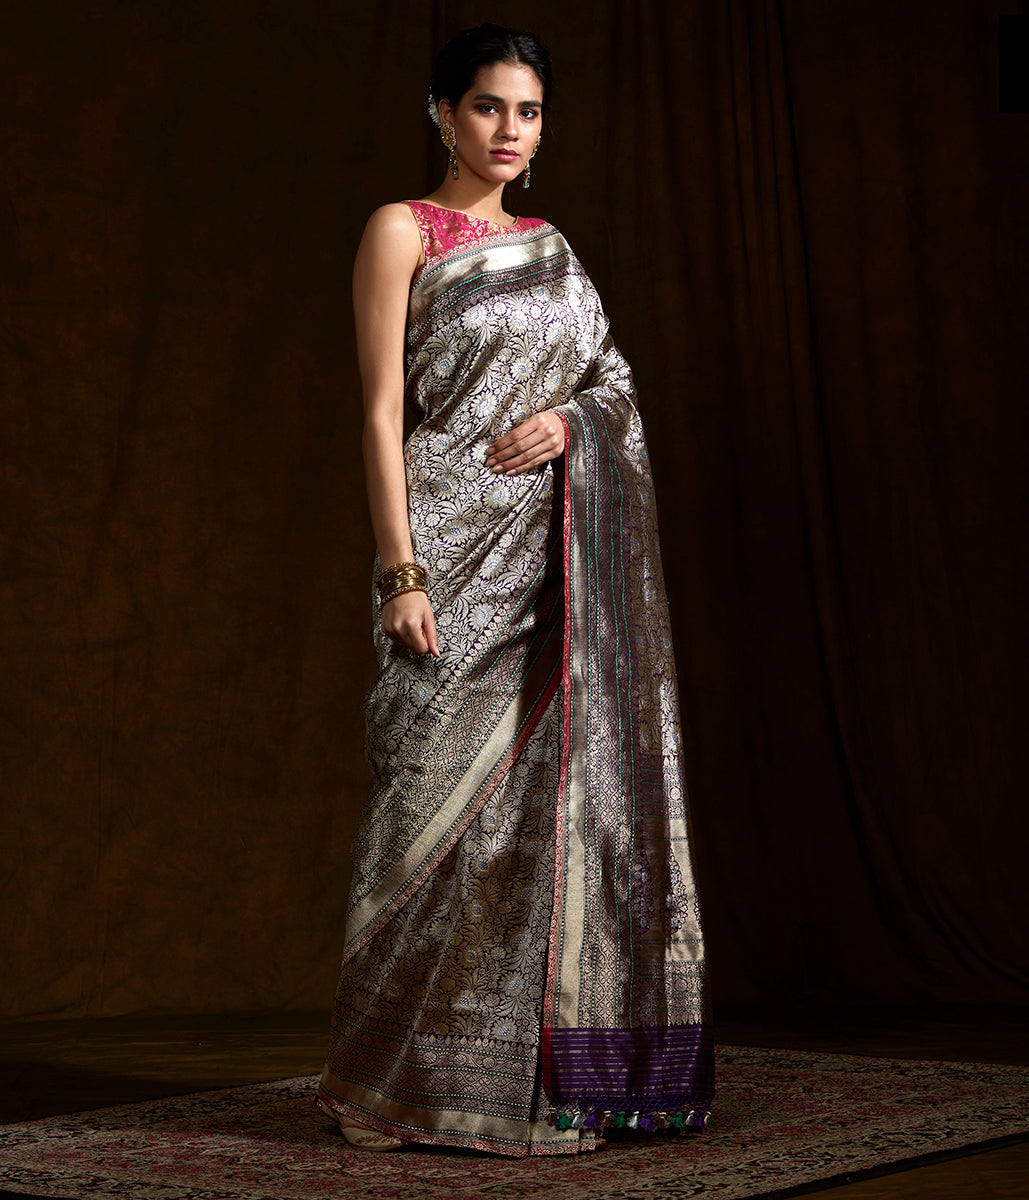 Purple and gold meenakari kimkhab saree with meenakari